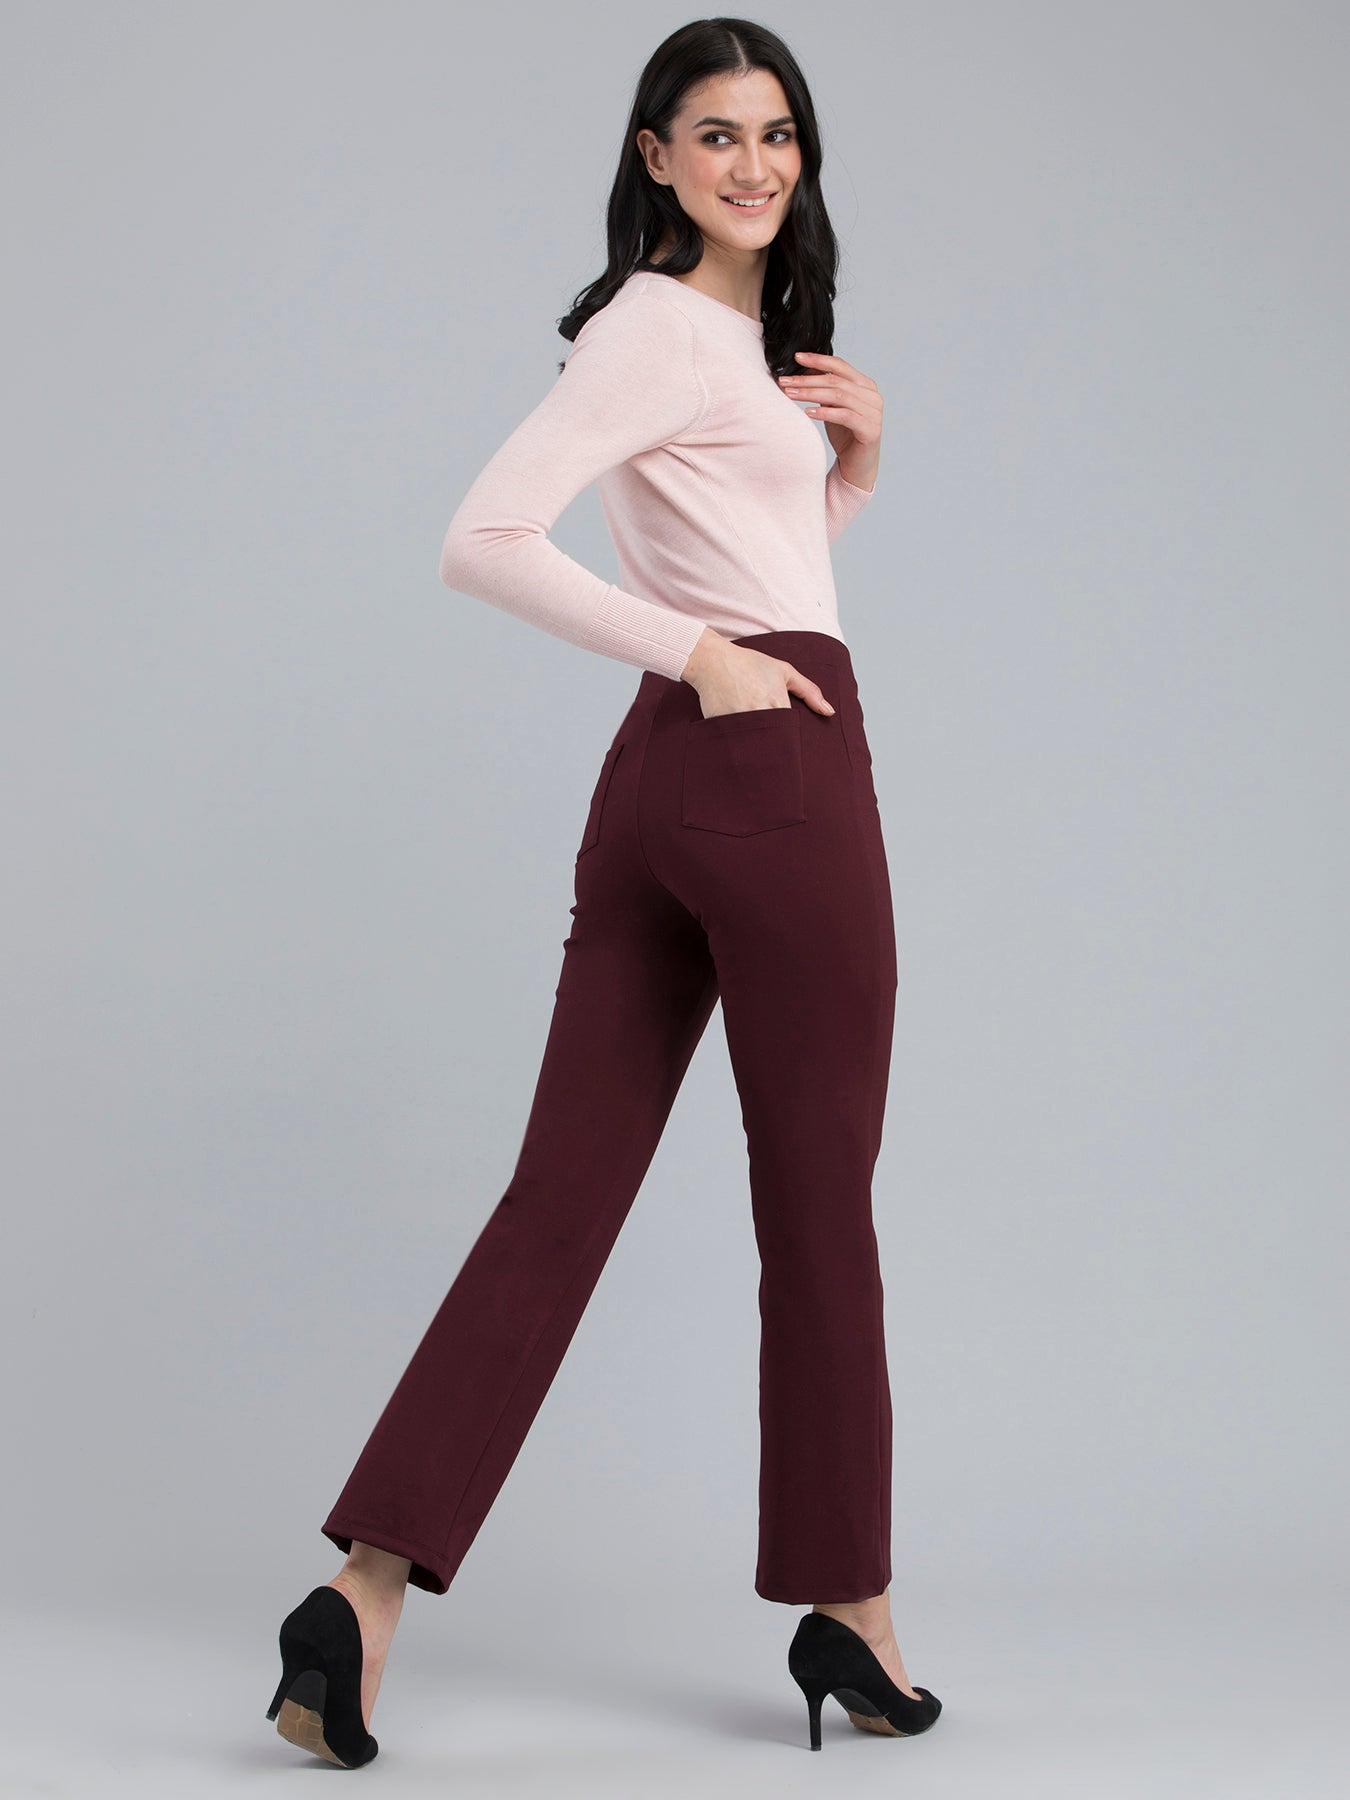 4 Way Stretch Slim Fit LivIn Jeggings - Maroon